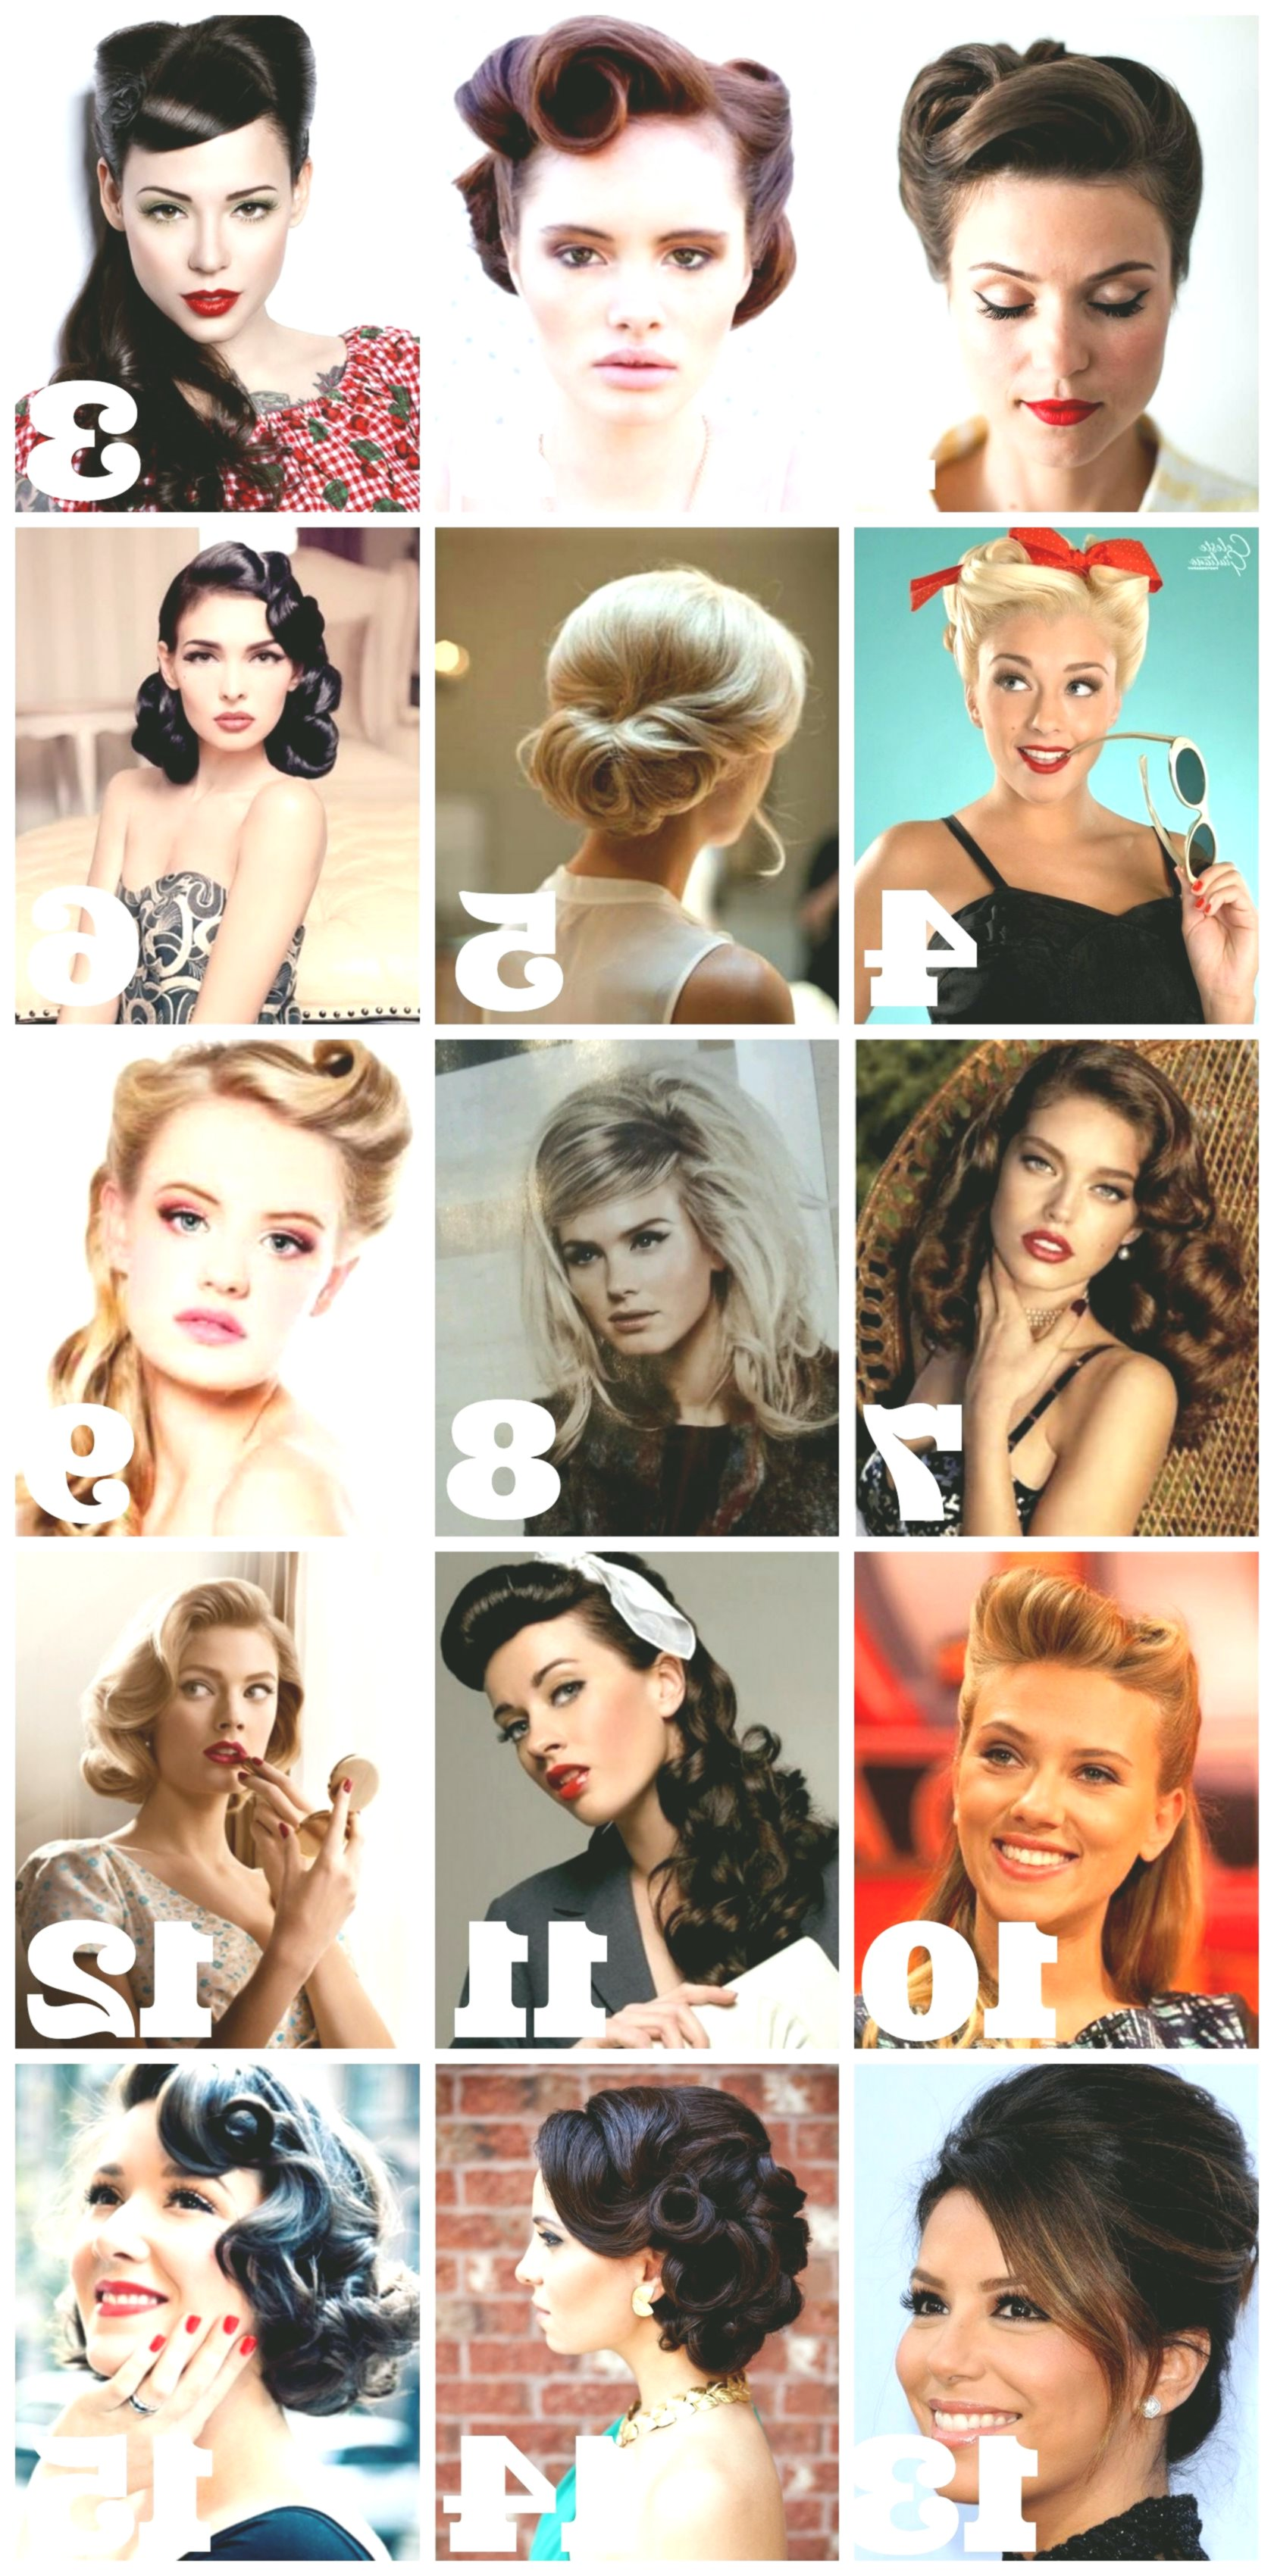 fancy 50 years hairstyles inspiration-Best 50 years hairstyles model